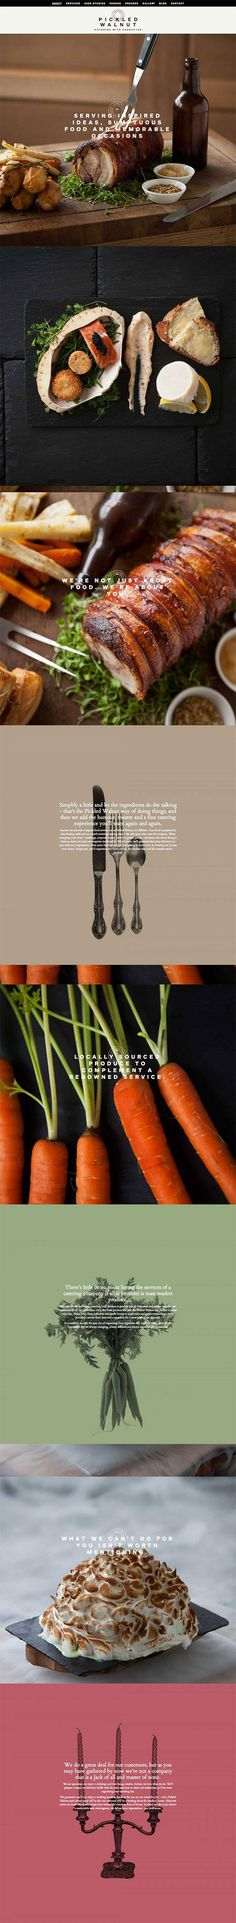 pickledwalnutcatering #aboutpages #layout #web